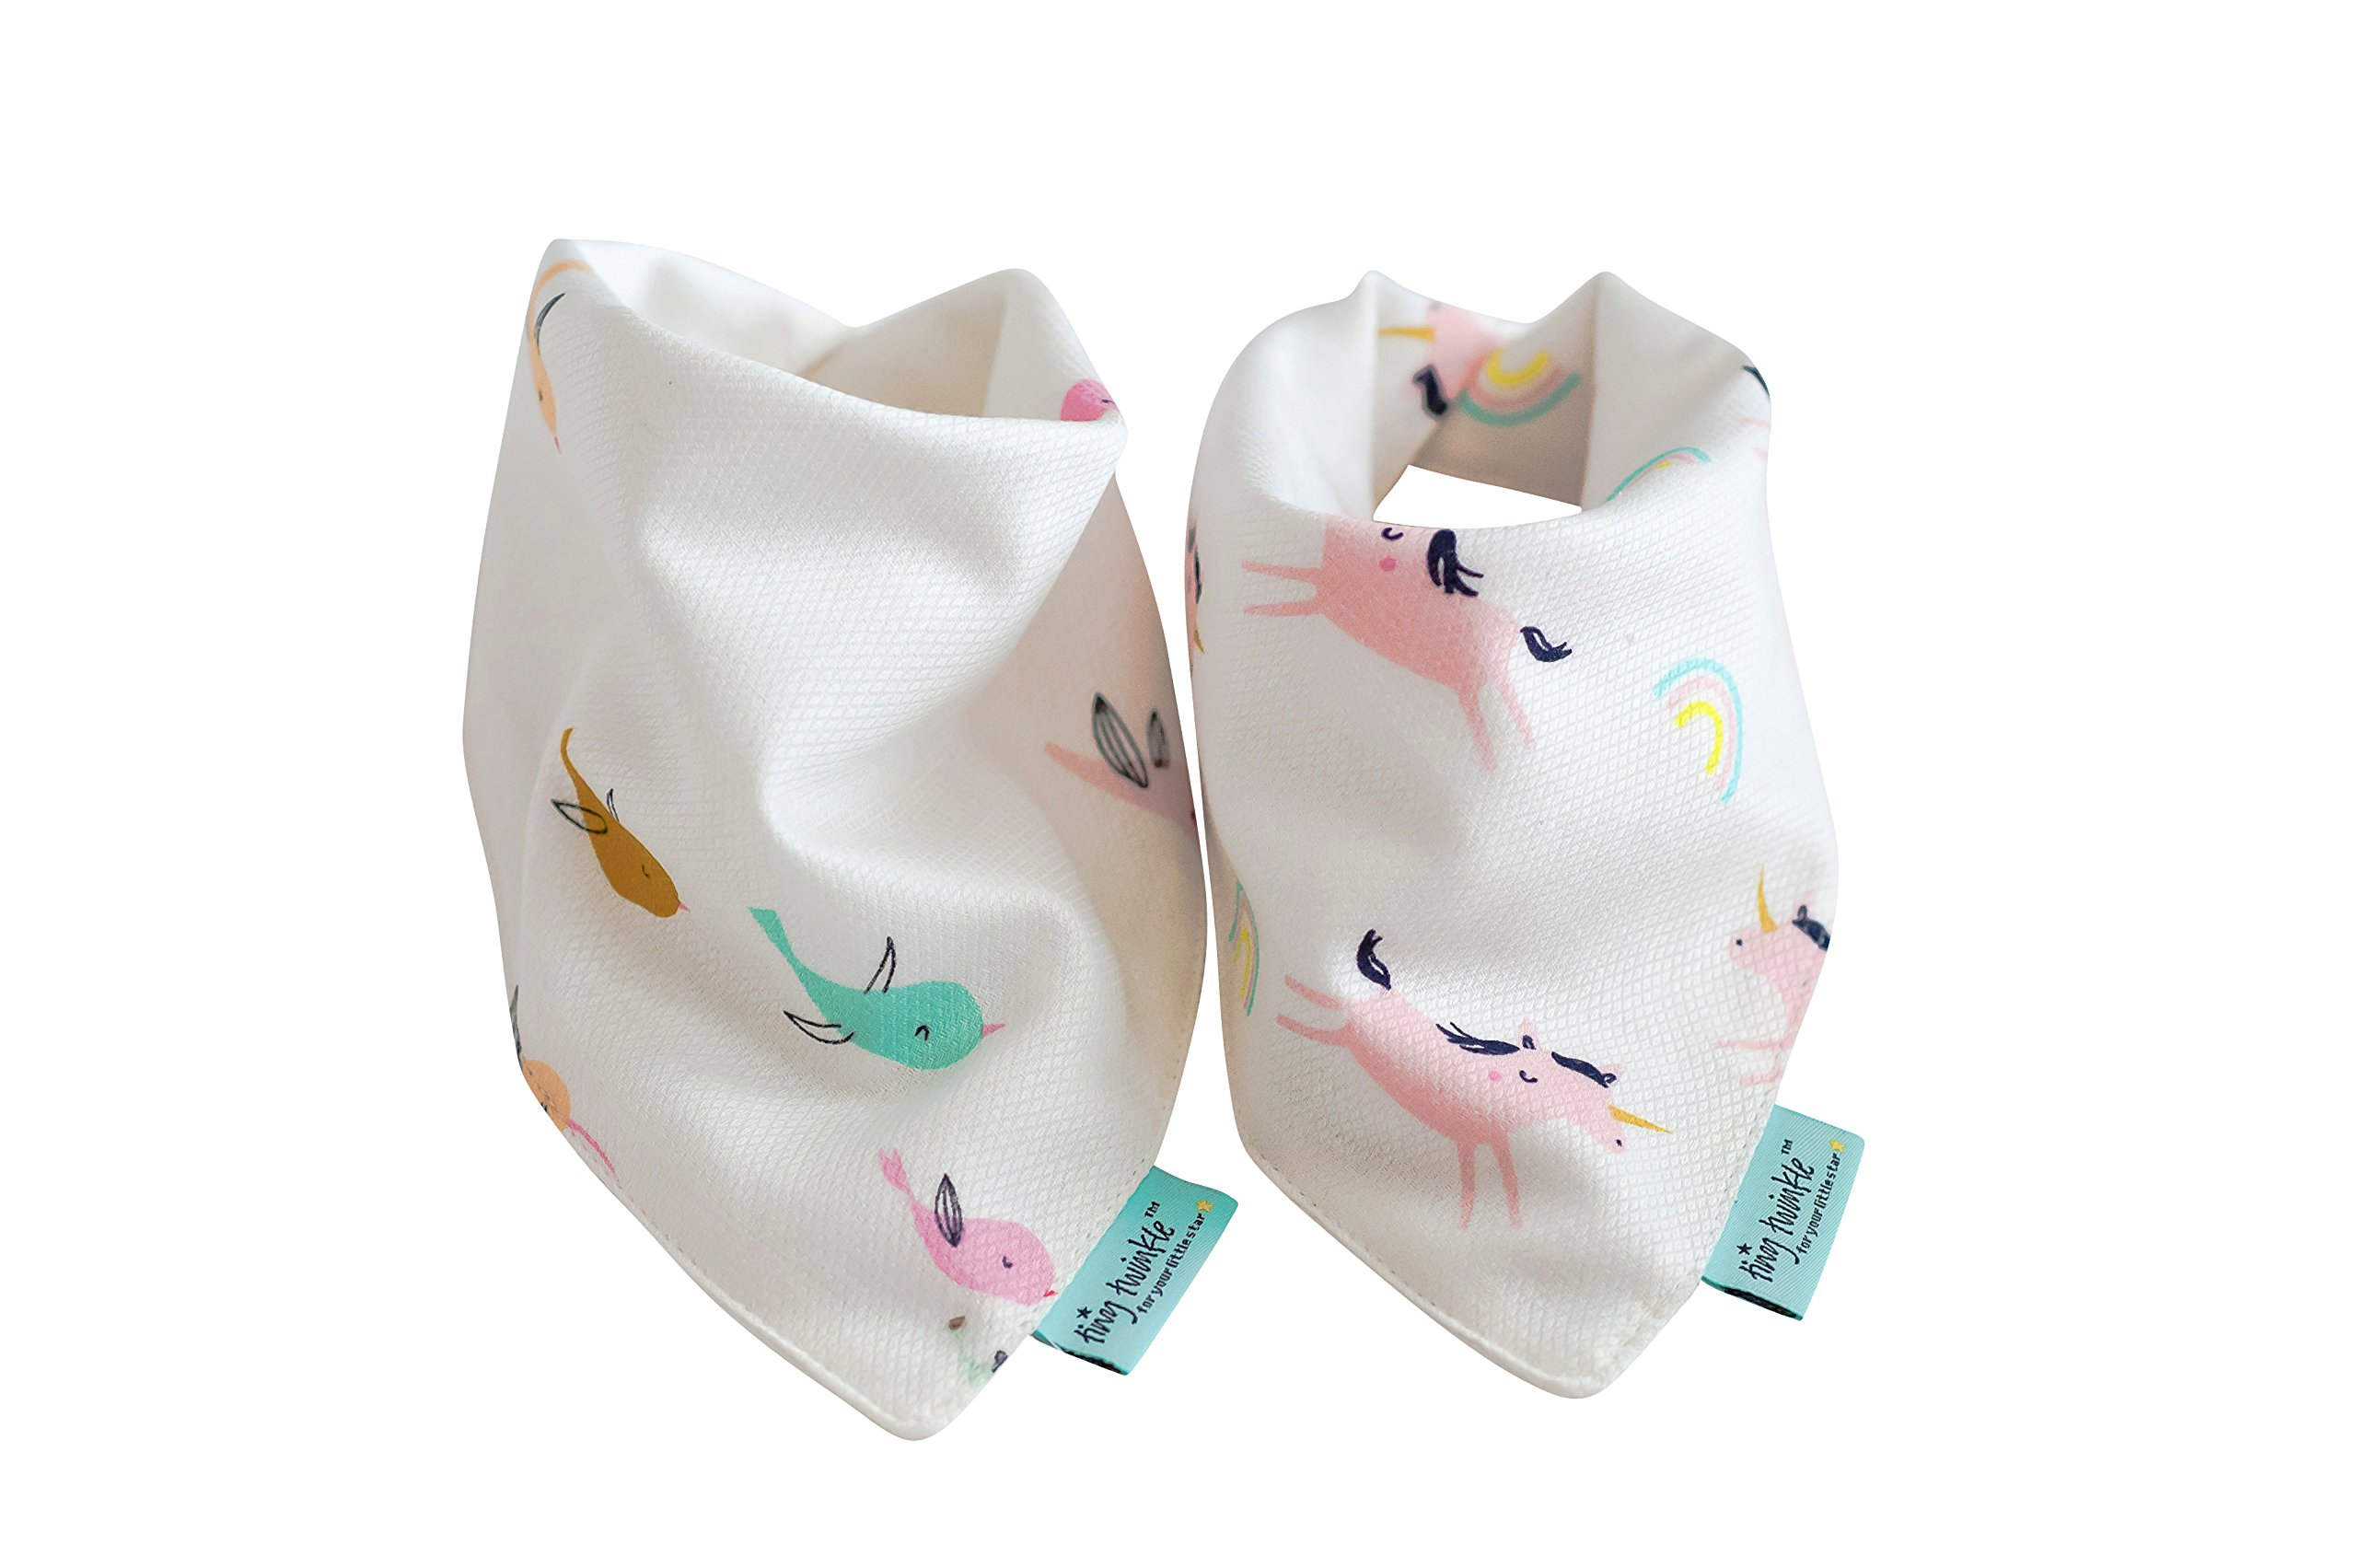 Soft, Absorbent, Waterproof Drool Bib with 3 Layer Kaffle Technology for Sensitive Skin: 2 Pack (Bird, Unicorn) by Tiny Twinkle